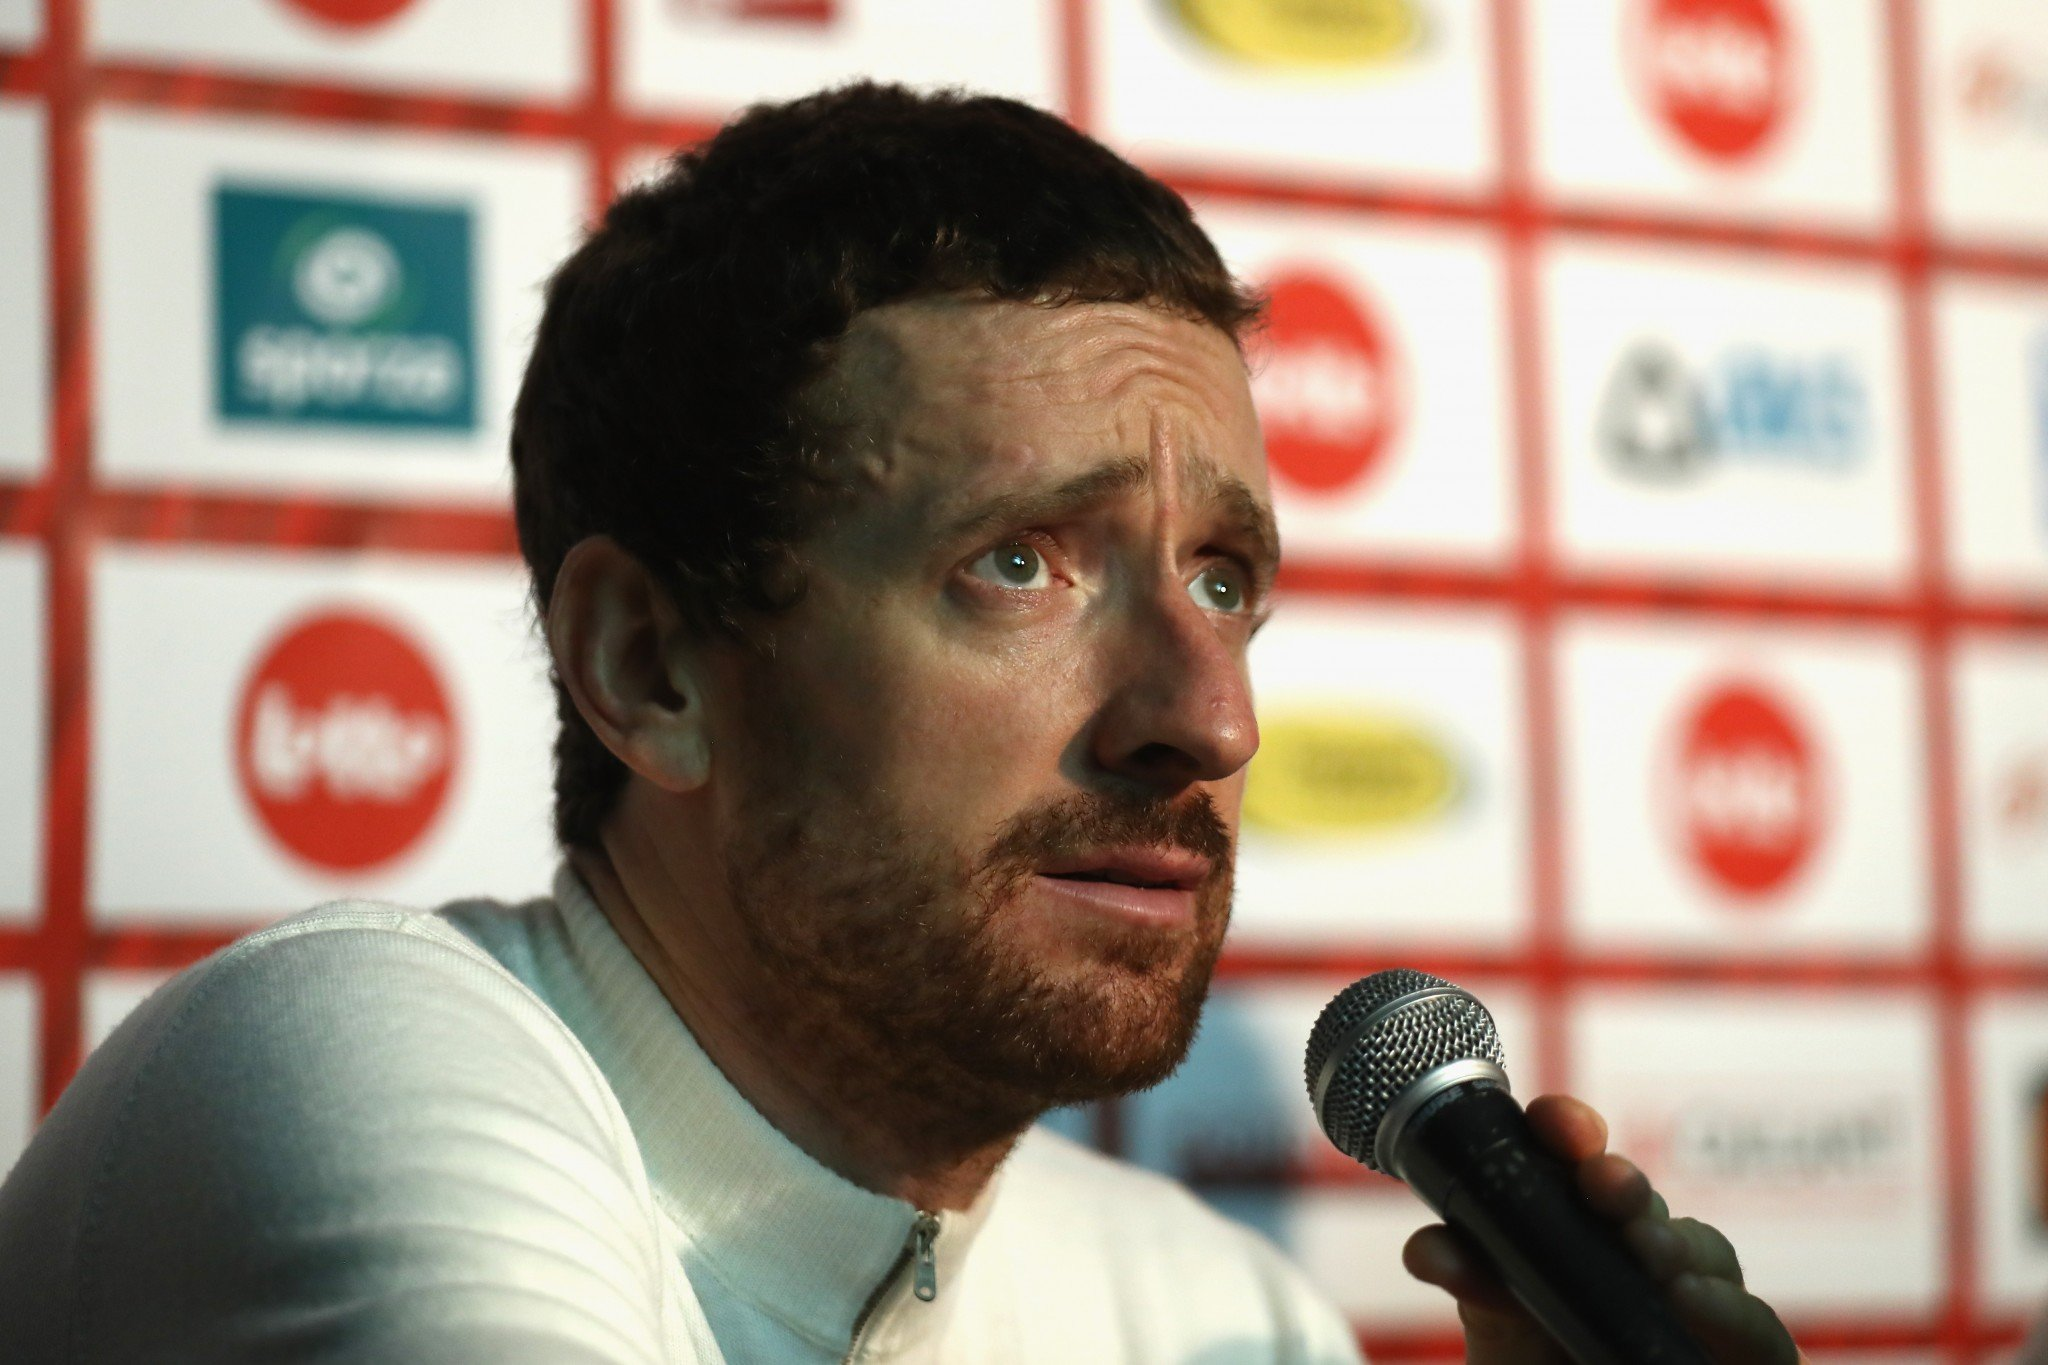 Sir Bradley Wiggins has hit back at those accusing of him of being a drugs cheat